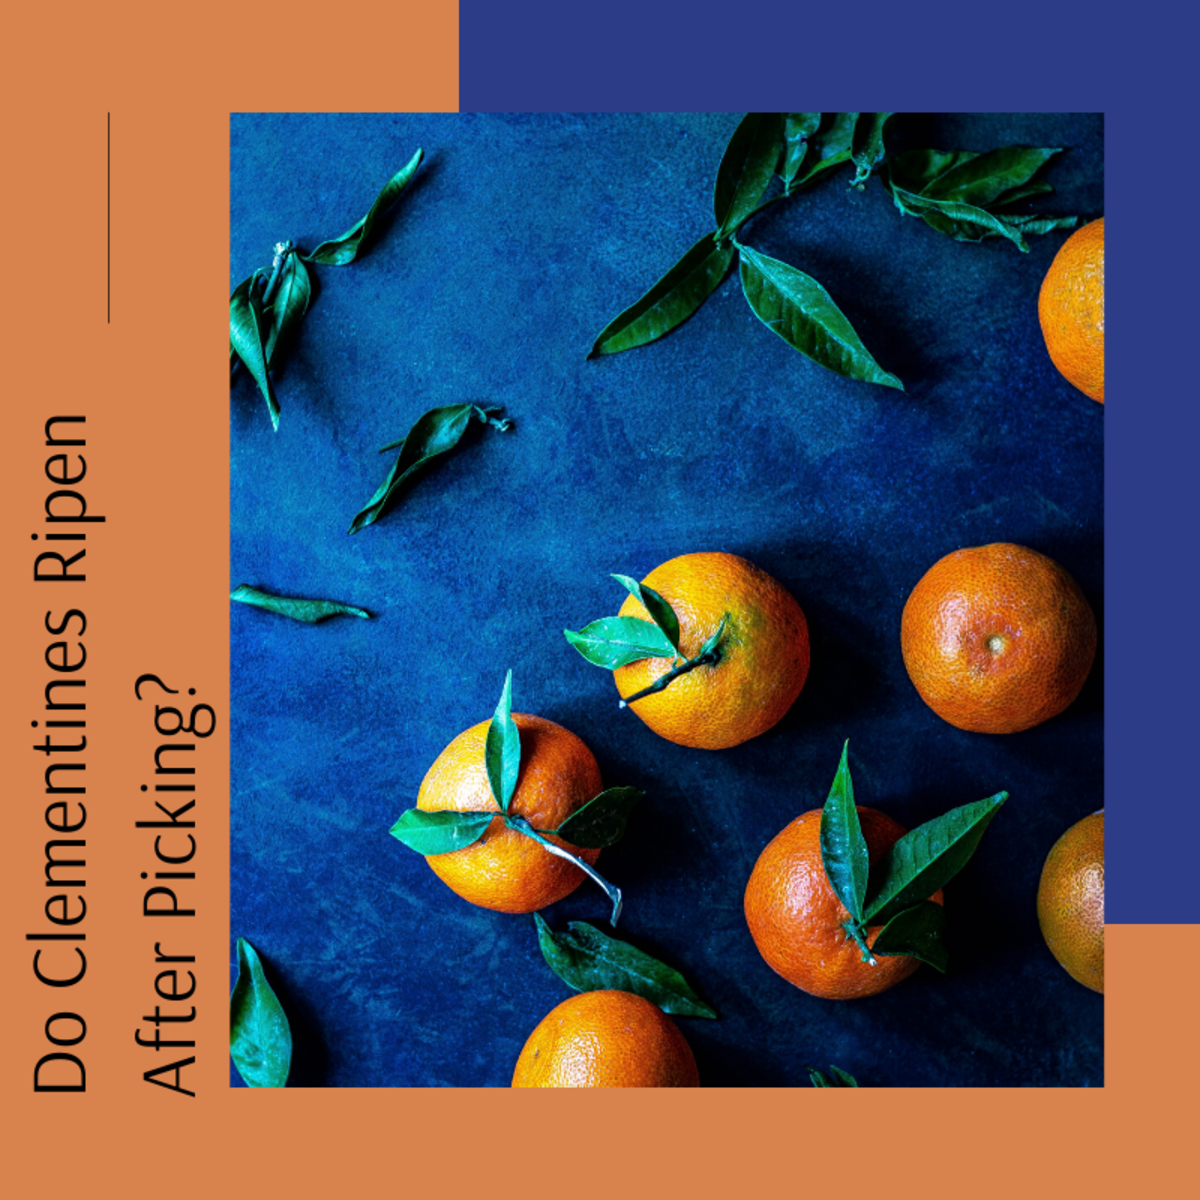 Find out why clementines don't ripen after picking them.